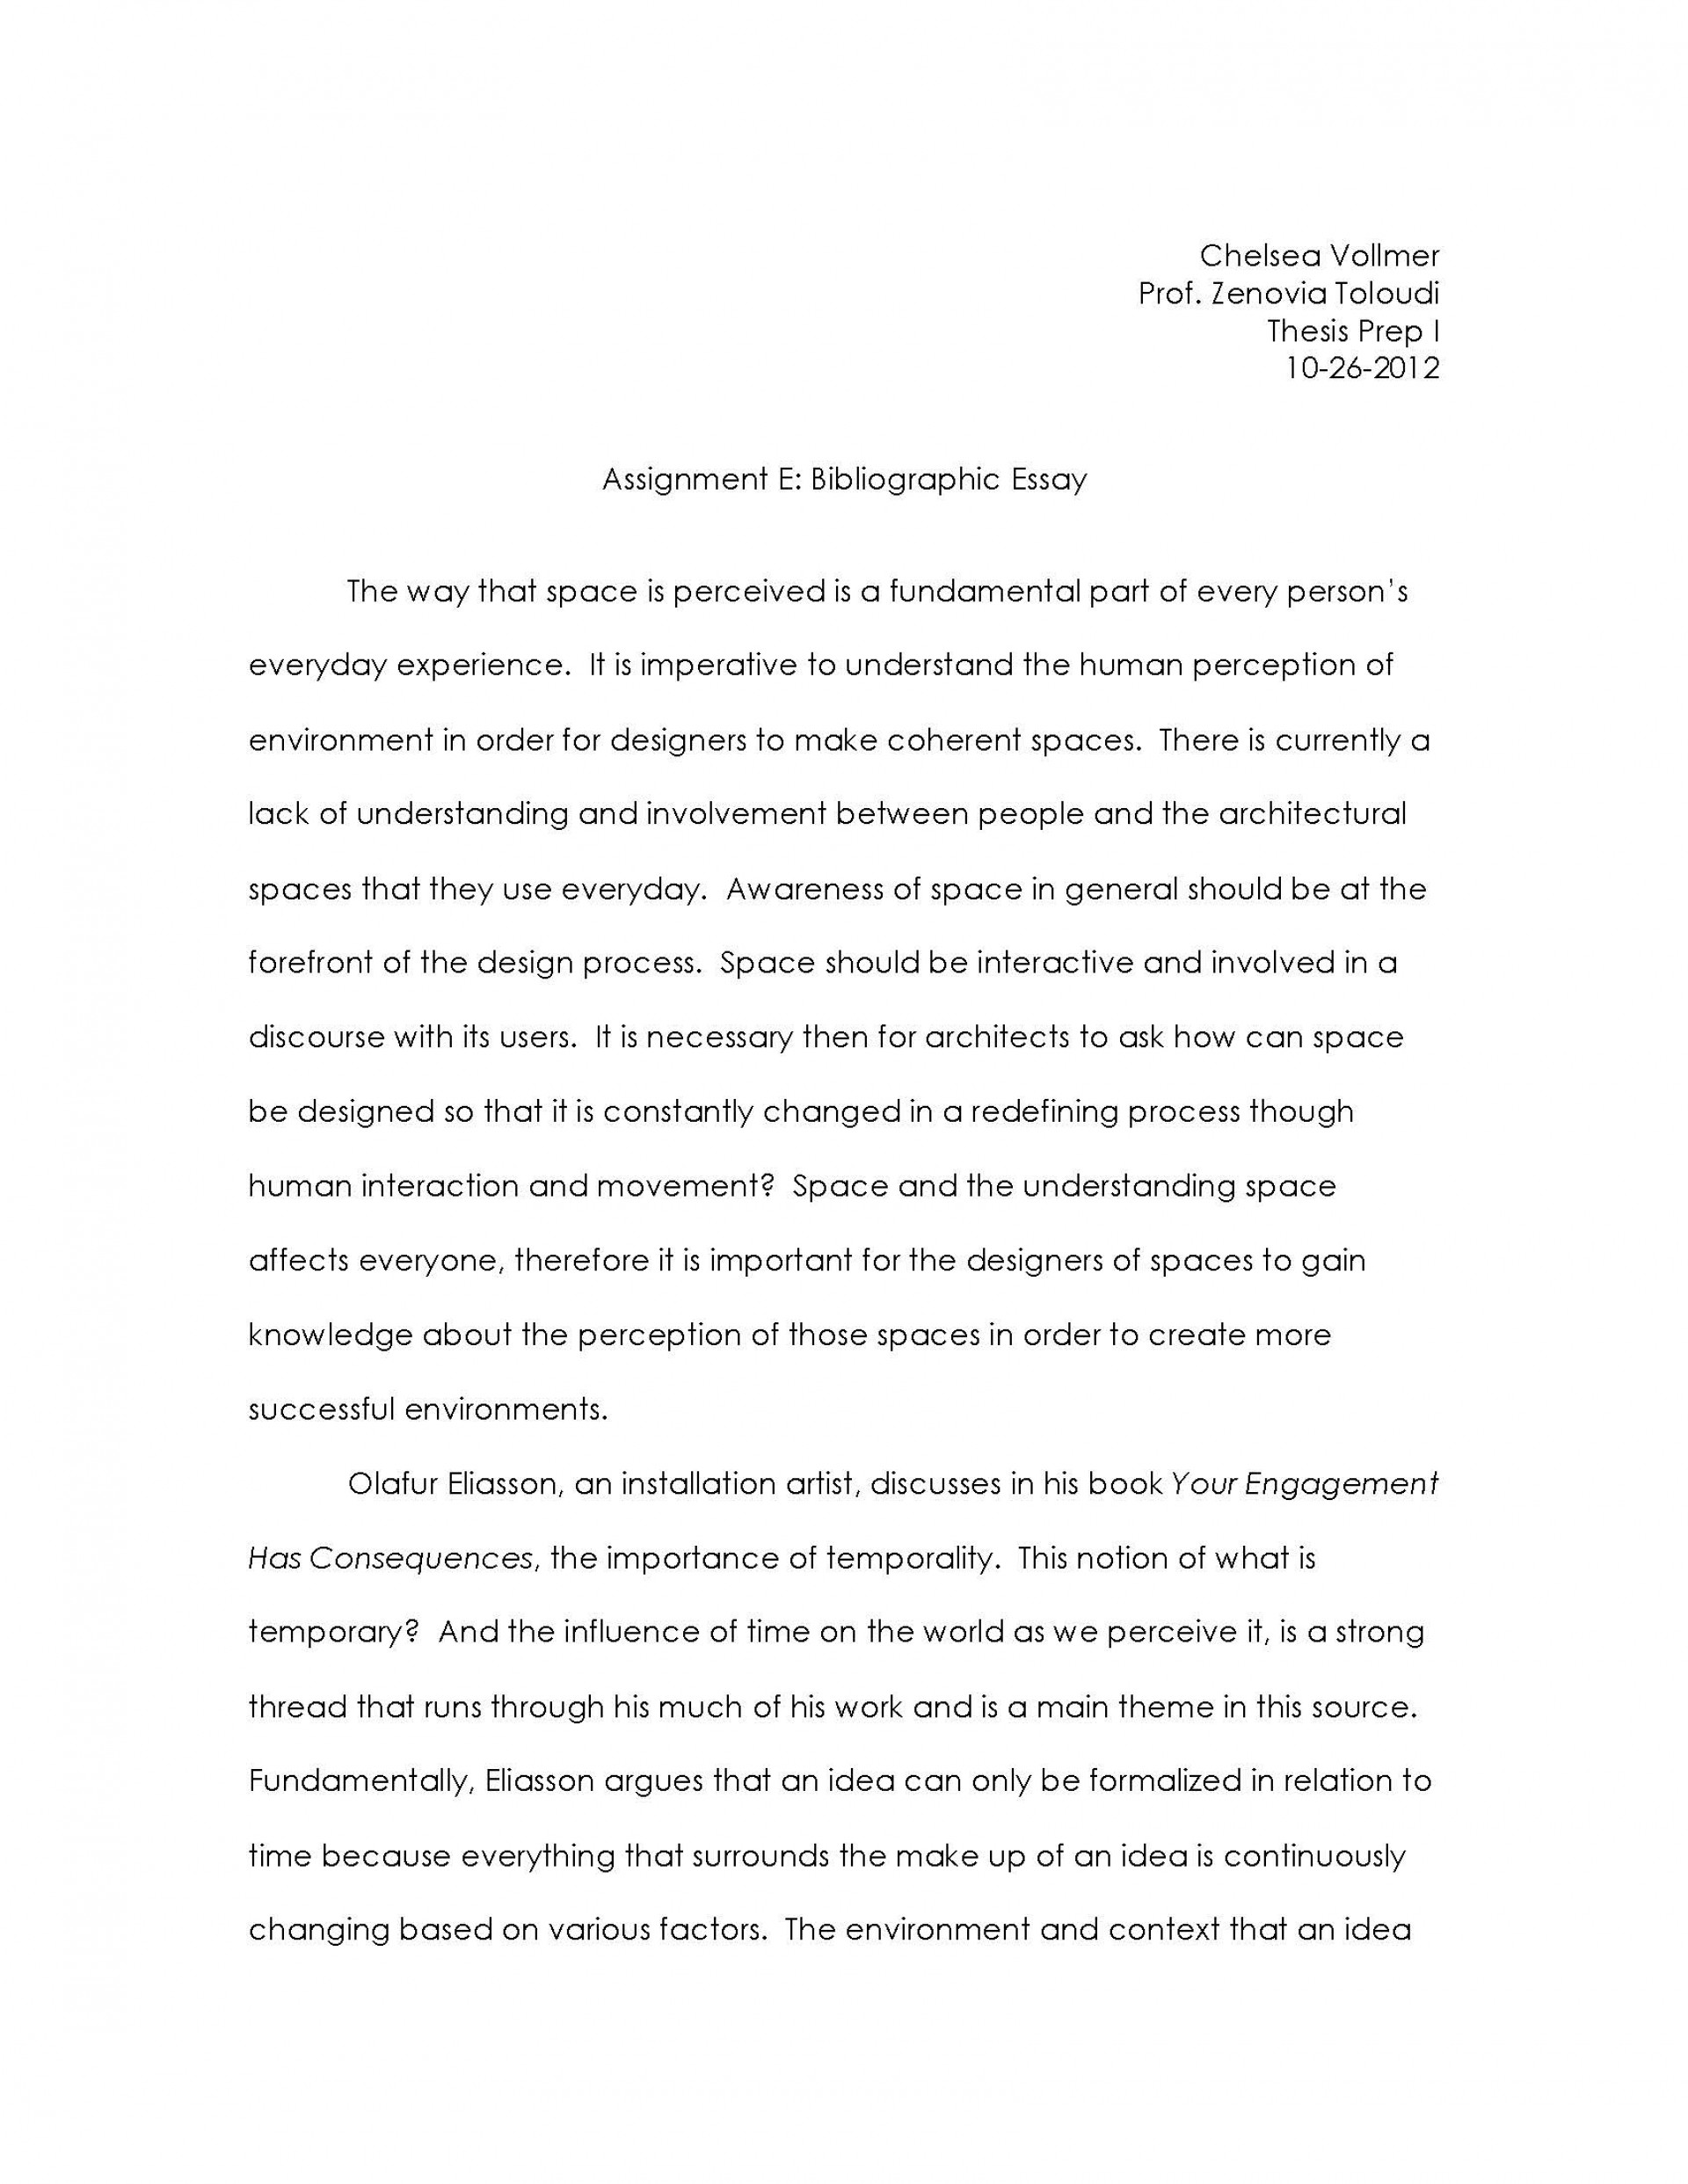 006 Essay Example Assignment E Page 12 How To Write Fascinating A Satire On Obesity Outline 1920